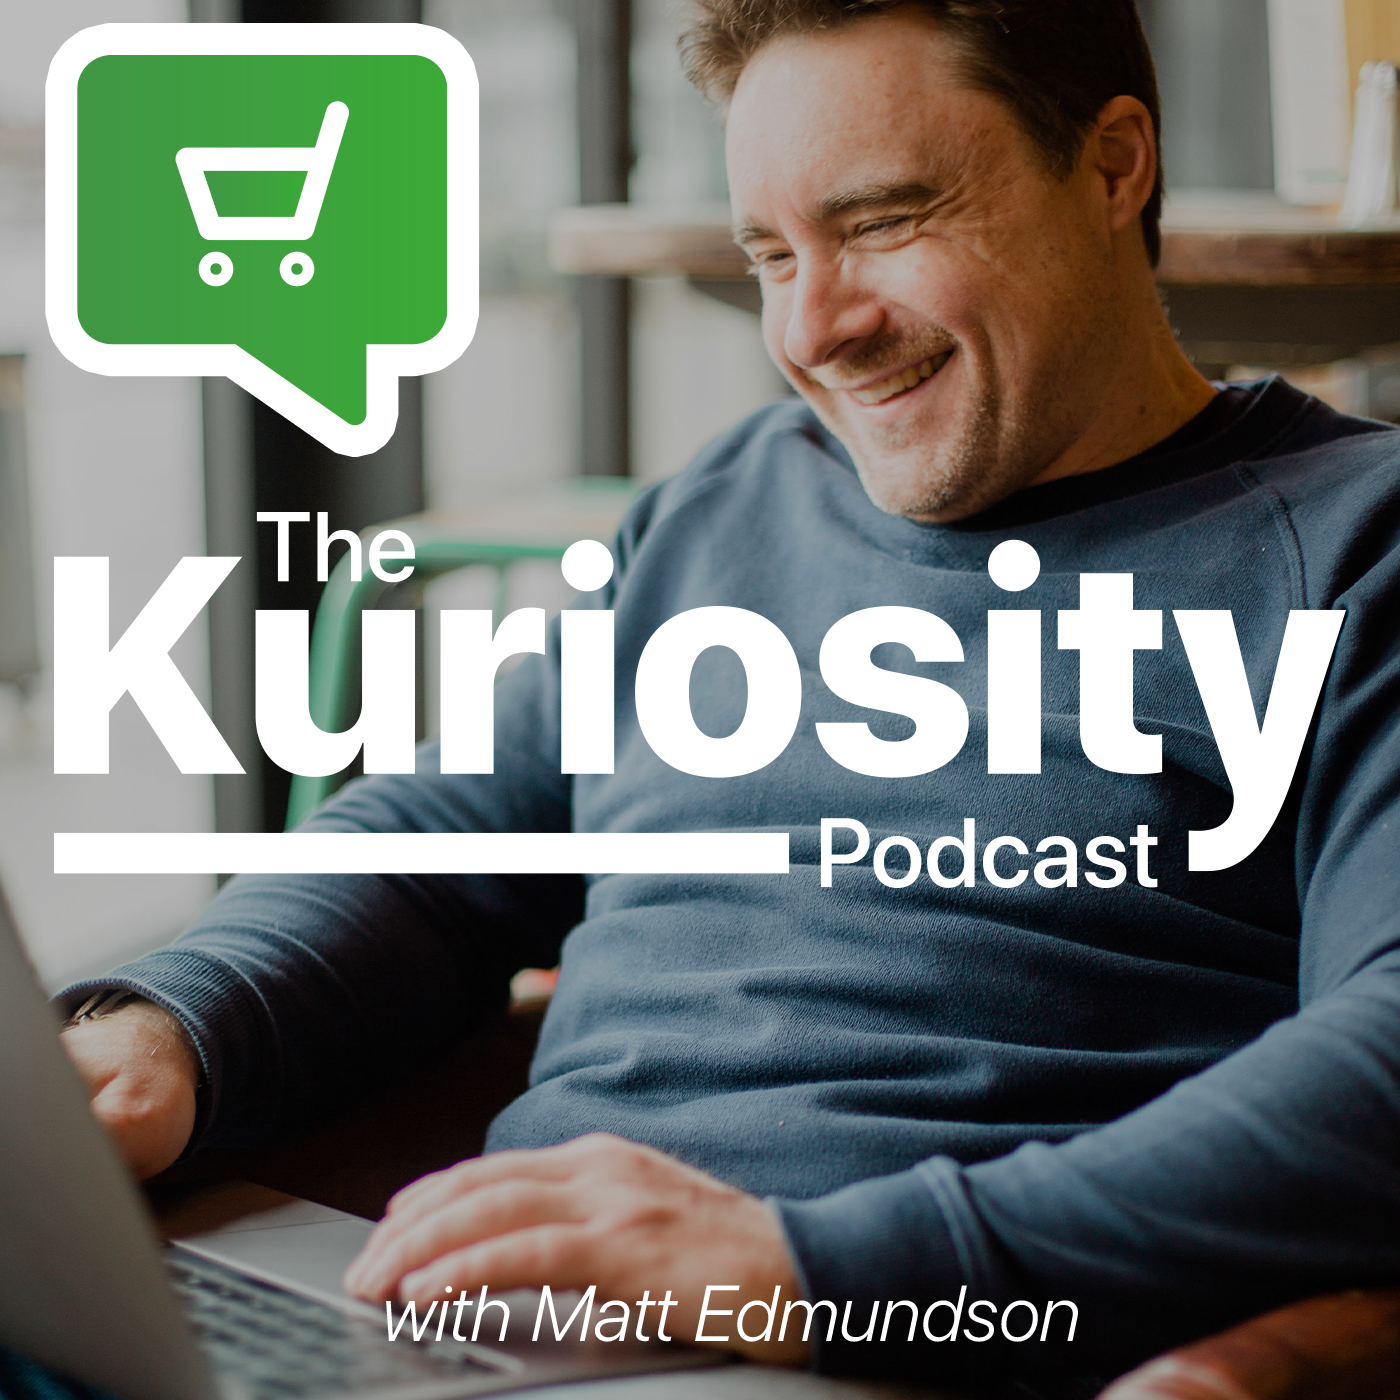 The Kuriosity Podcast